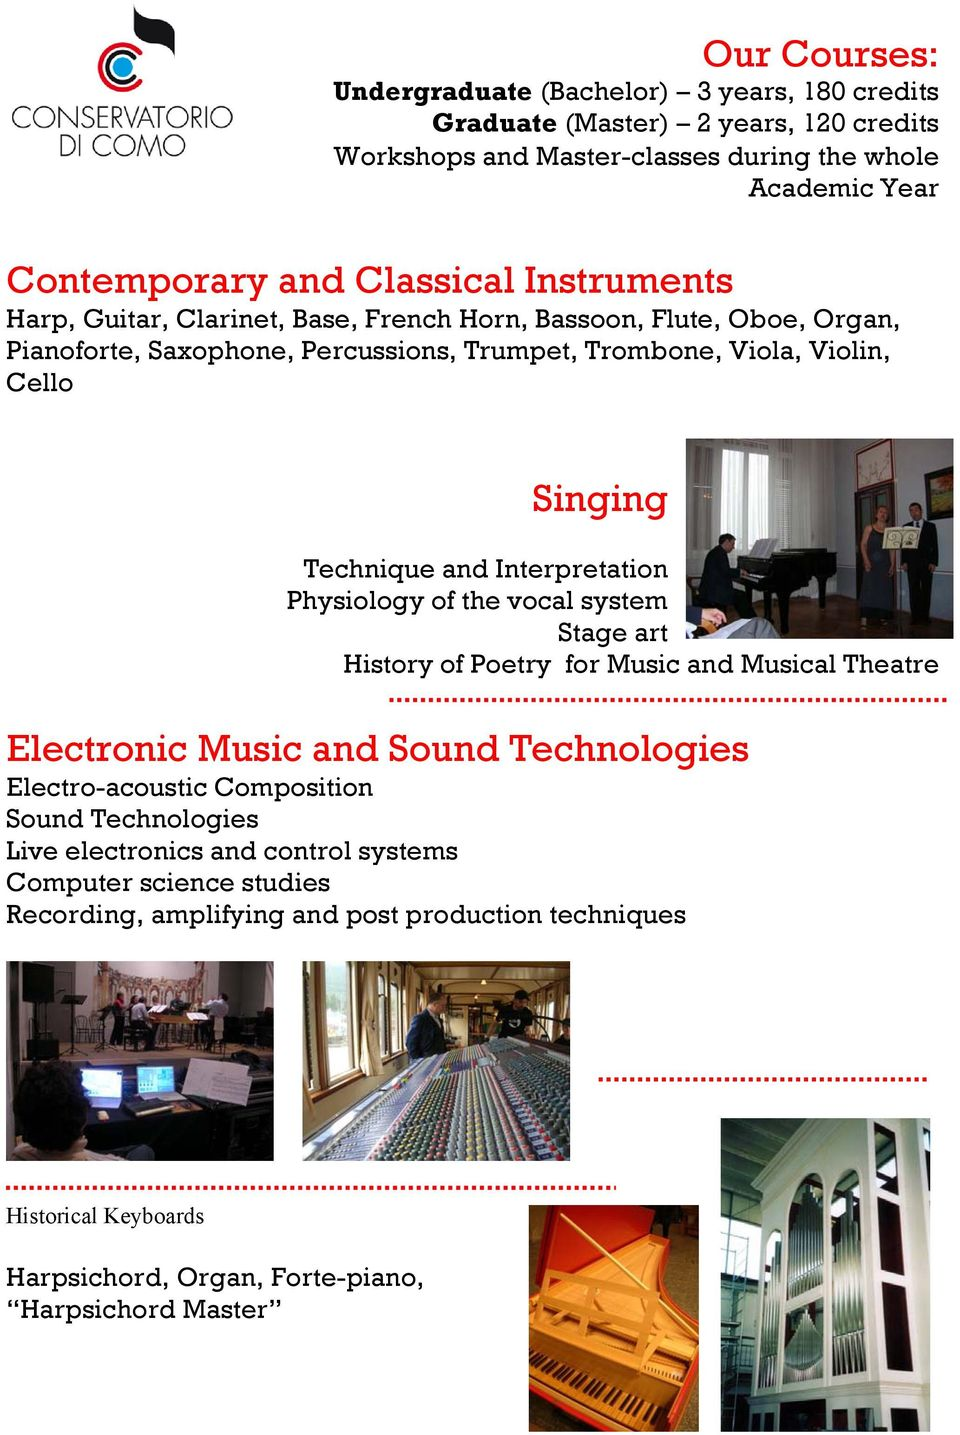 Interpretation Physiology of the vocal system Stage art History of Poetry for Music and Musical Theatre Electronic Music and Sound Technologies Electro-acoustic Composition Sound